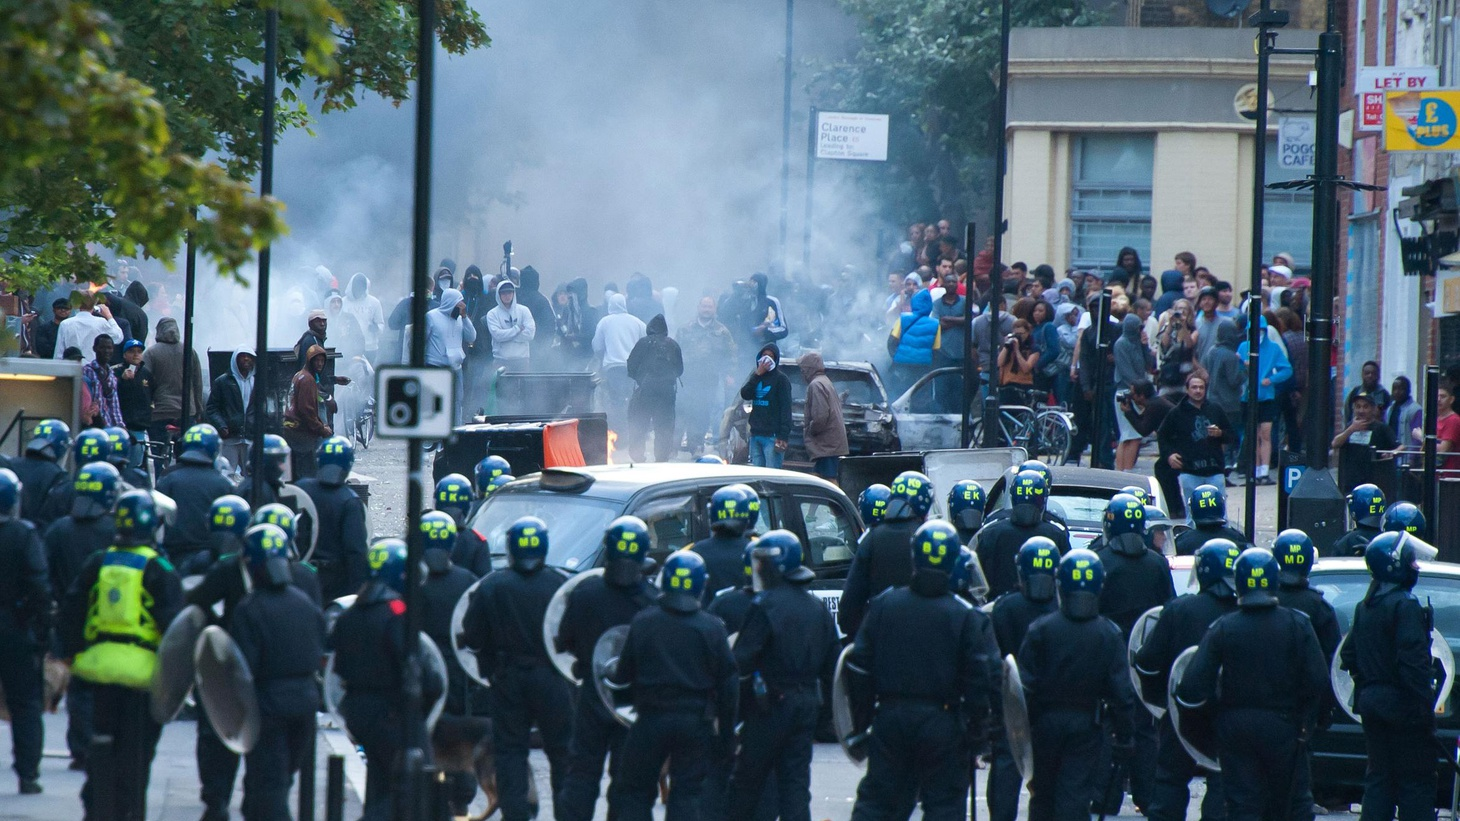 London's seen its worst unrest in decades. LA saw America's most violent, deadly civil disturbance in the 20th Century. The LAPD may have some valuable lessons to share.